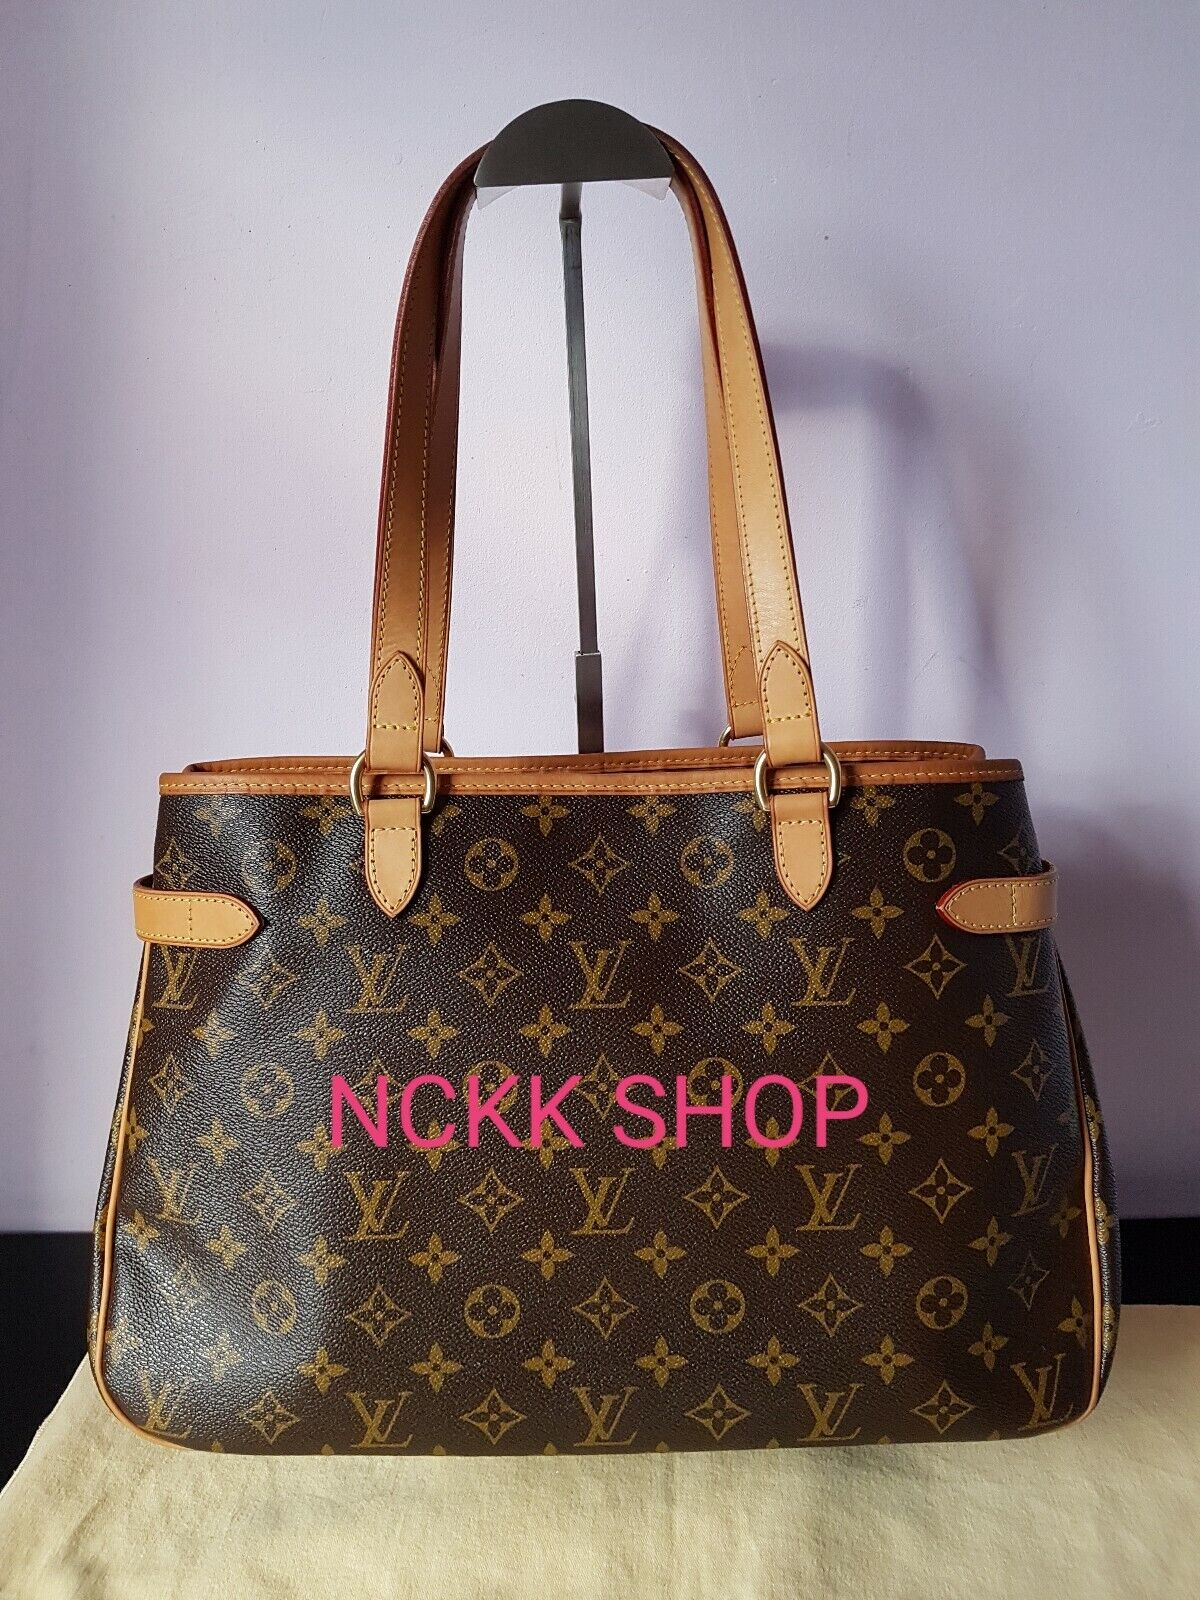 Louis Vuitton Monogram Canvas Batignolles Horizontal Hand Bag m51154 - 825.09,Kaufpreis 825,09,datum 01.07.2020 22:12:38,Website quoka.de